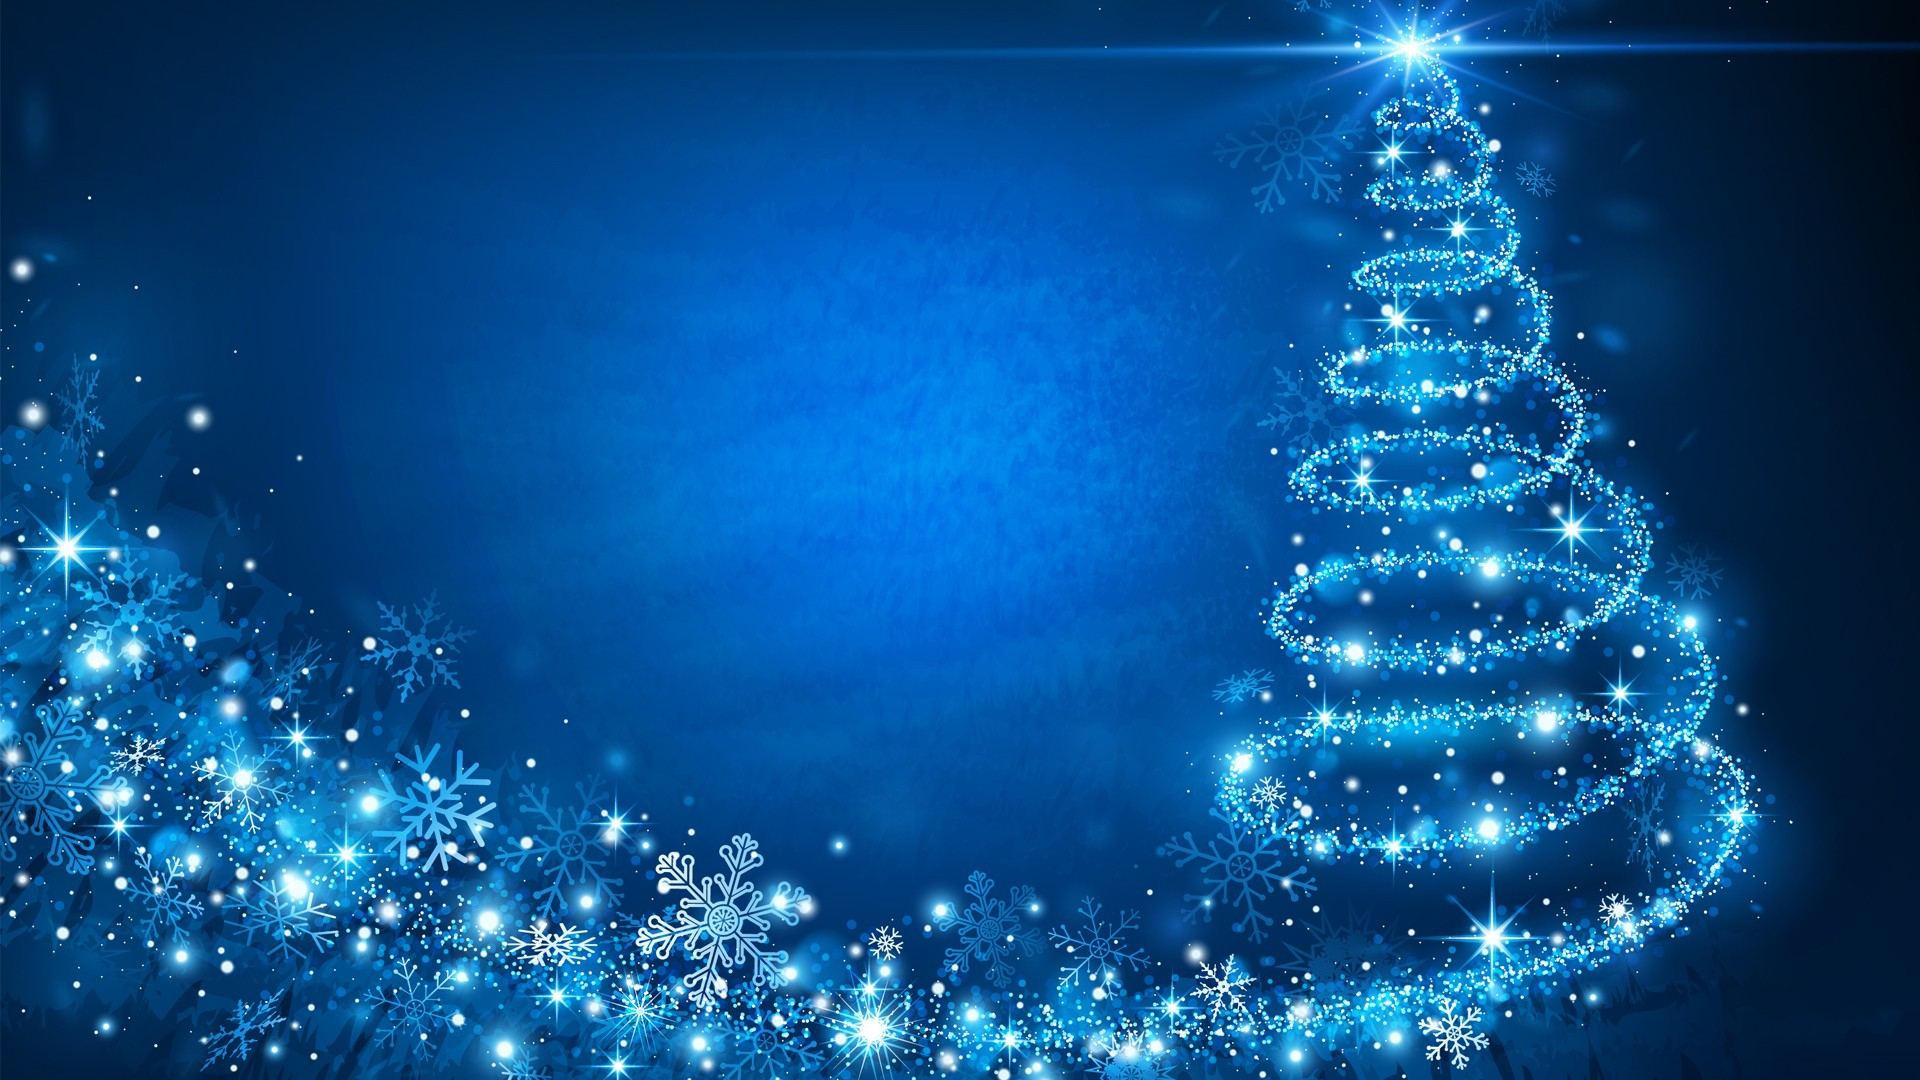 Free Fall Wallpaper For Computer Blue Christmas Wallpaper Hd Pixelstalk Net